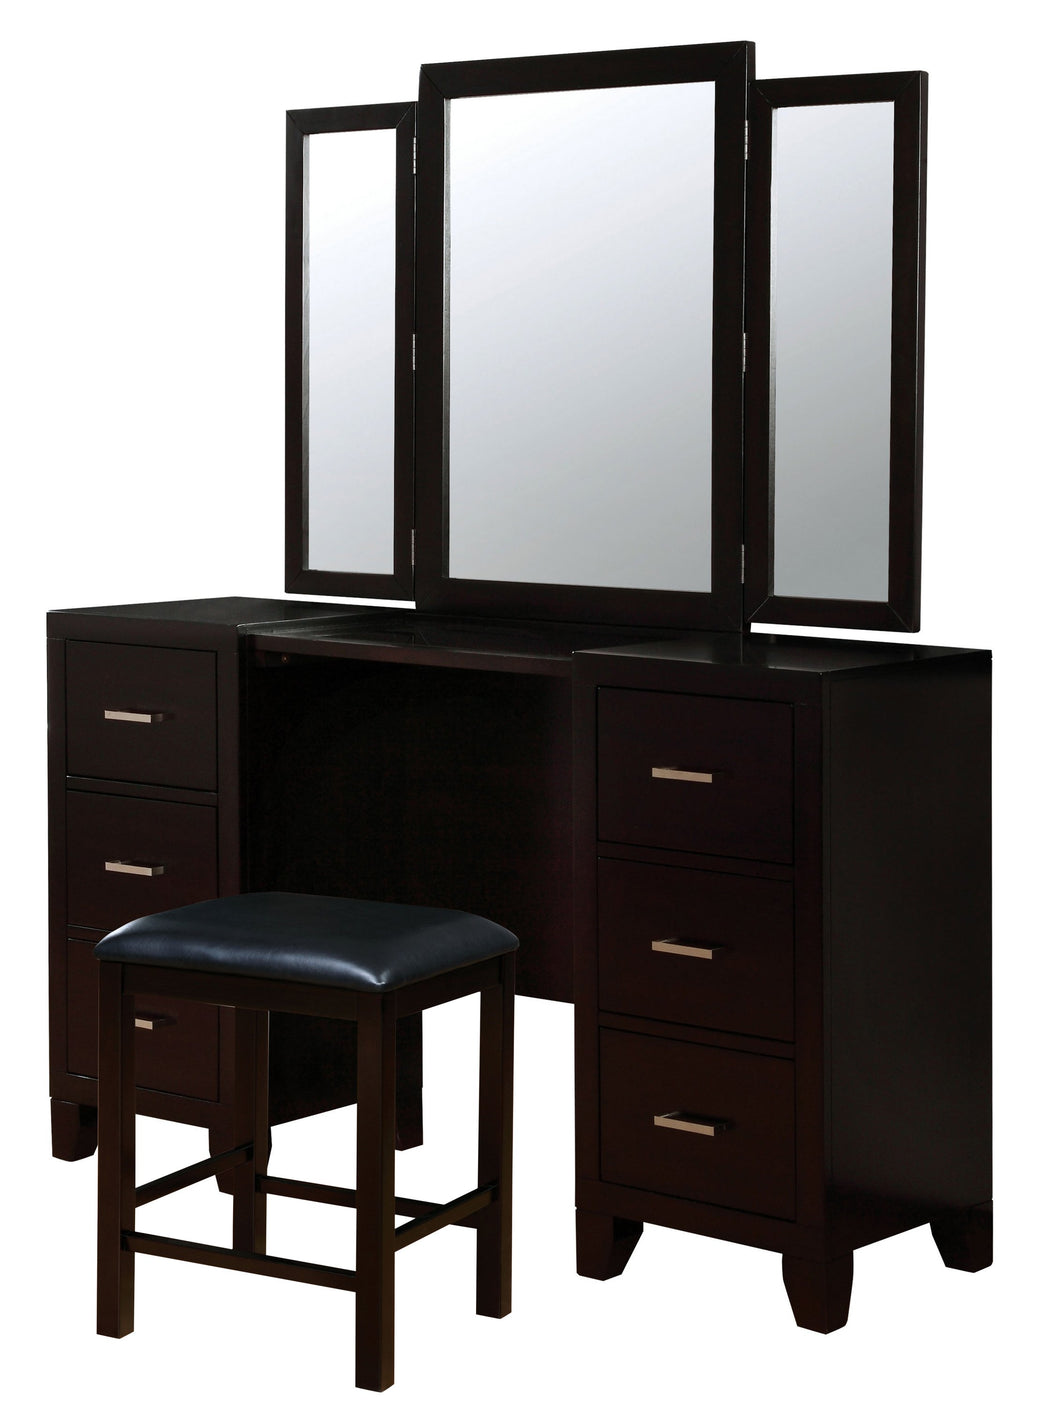 Covington Contemporary 3-Sided Mirror Espresso Vanity and Stool Set